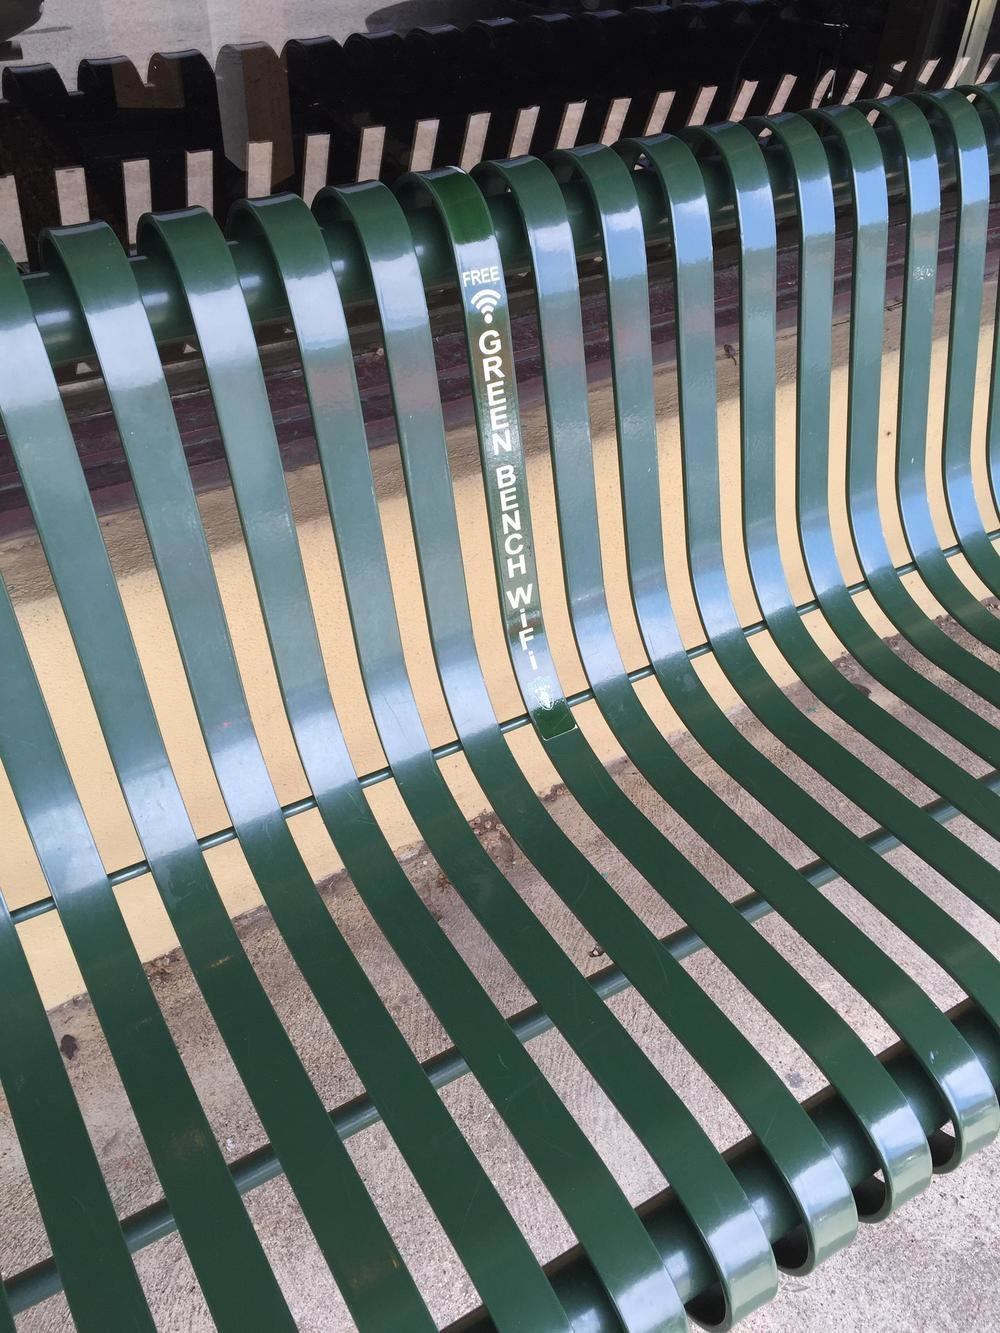 The coolest park bench for its WiFi capabilities.